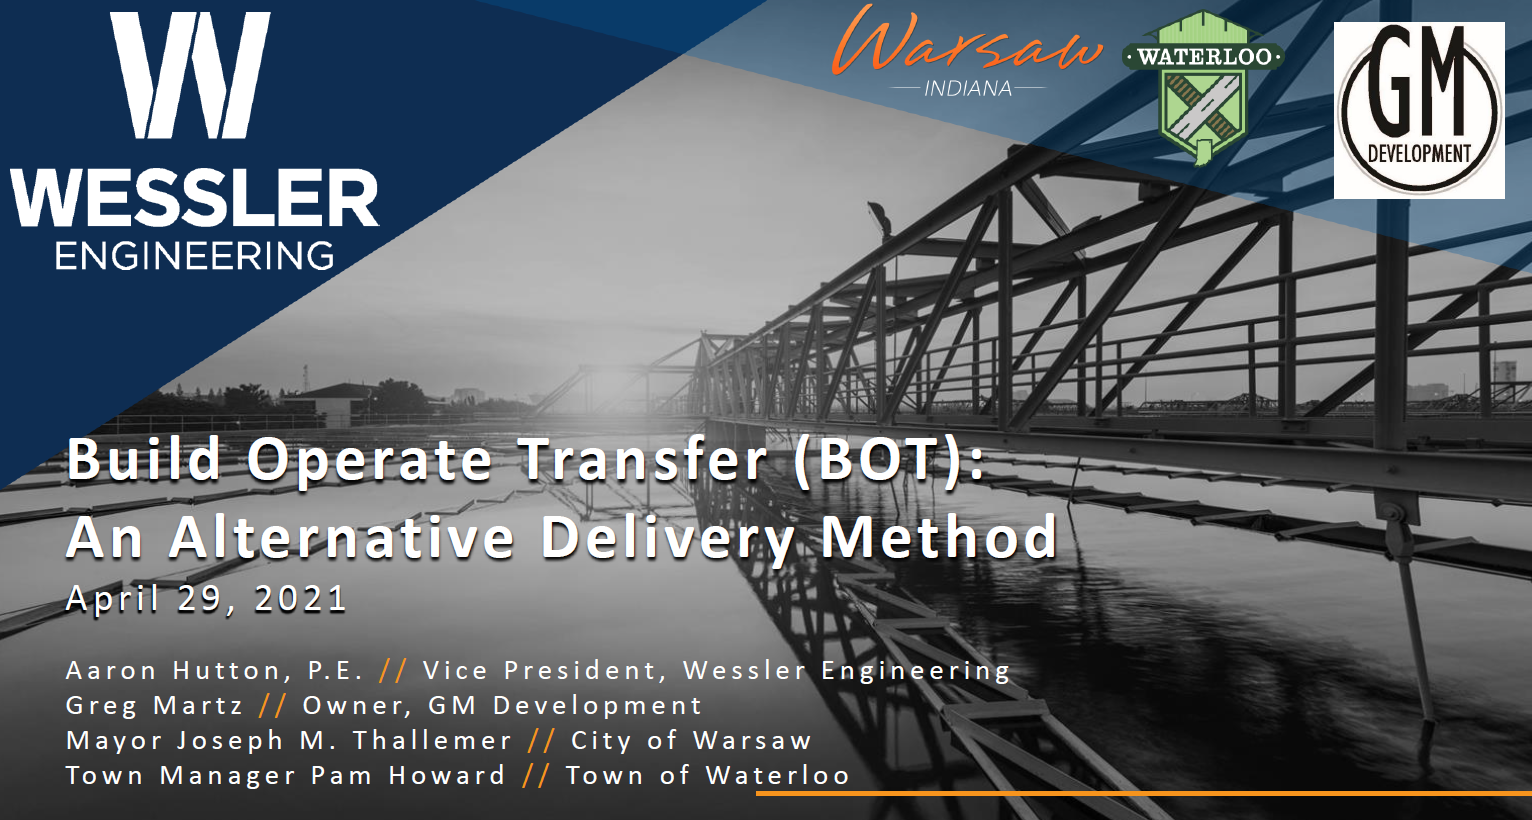 [Webinar Recording] Build-Operate-Transfer (BOT) - An Alternate Delivery Method